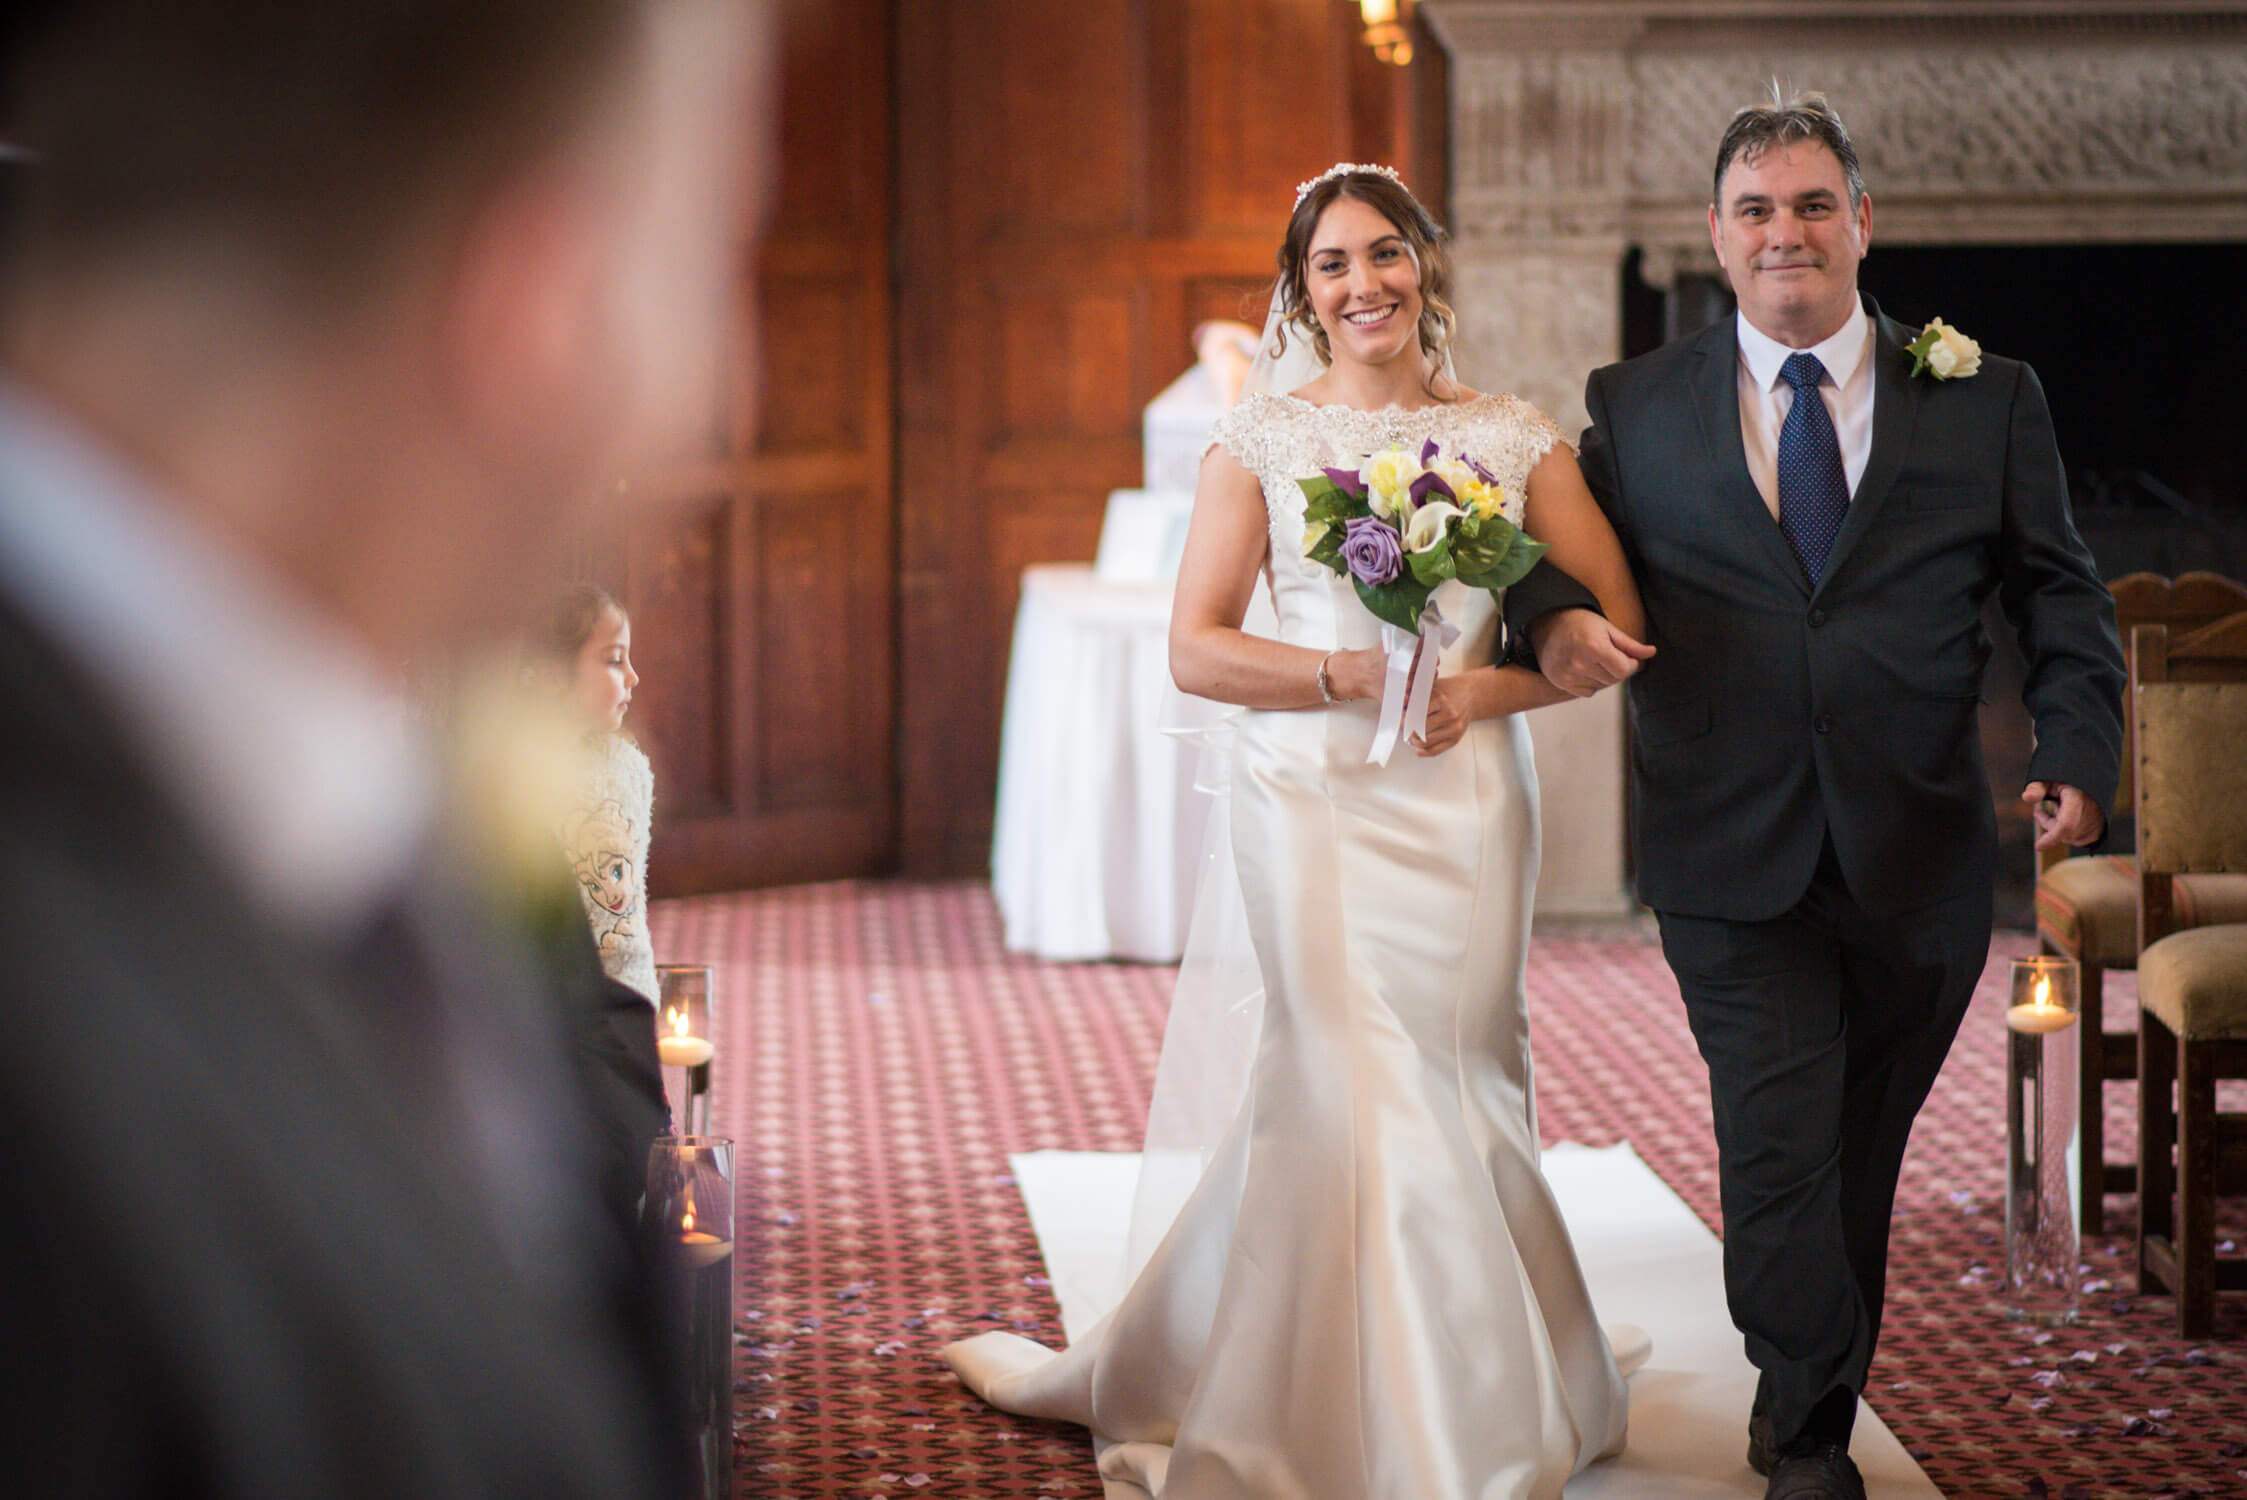 Walking up the aisle at Tylney Hall